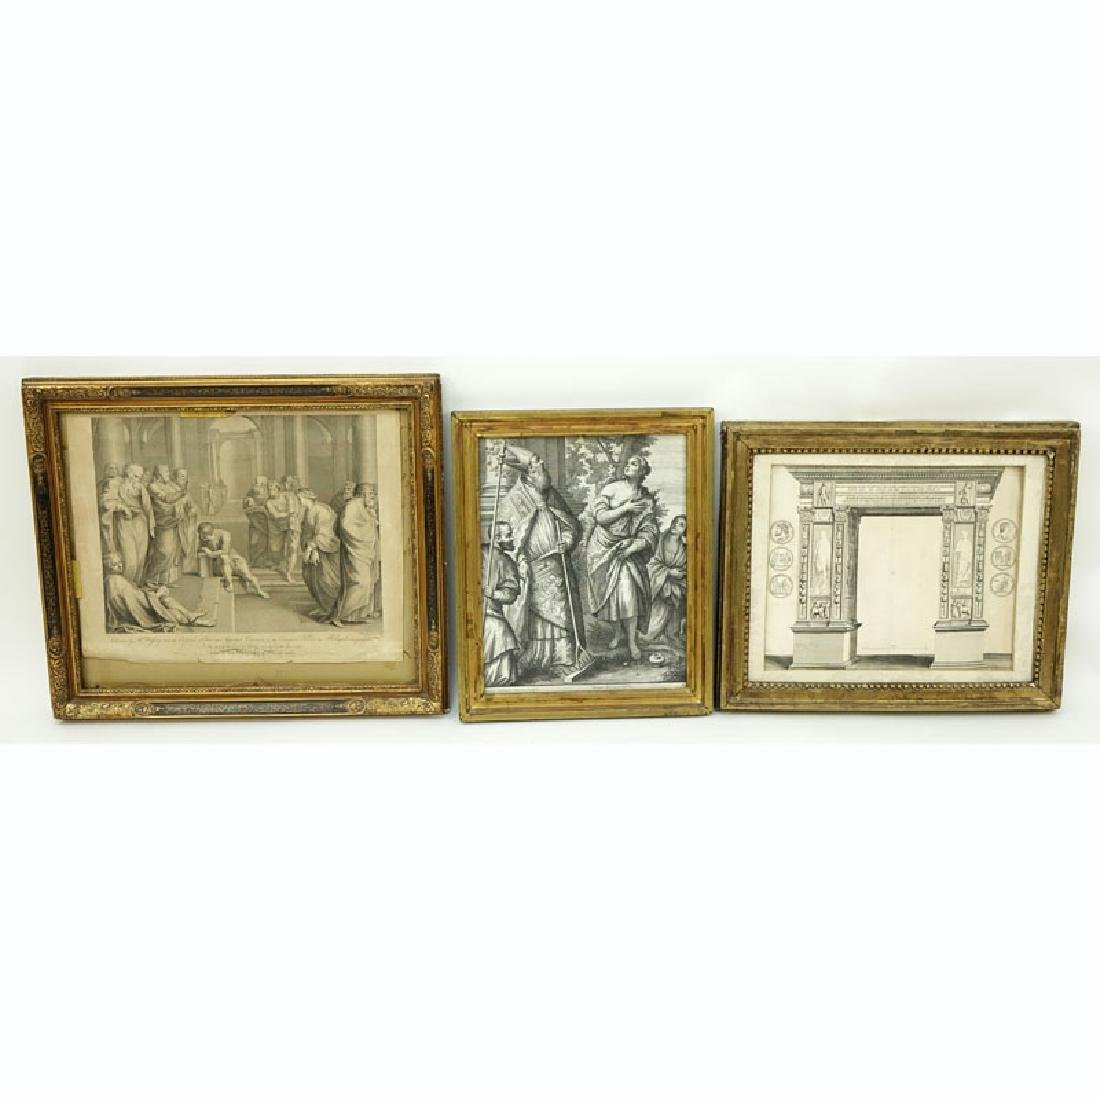 Grouping of Three (3) Antique or Vintage Artworks.